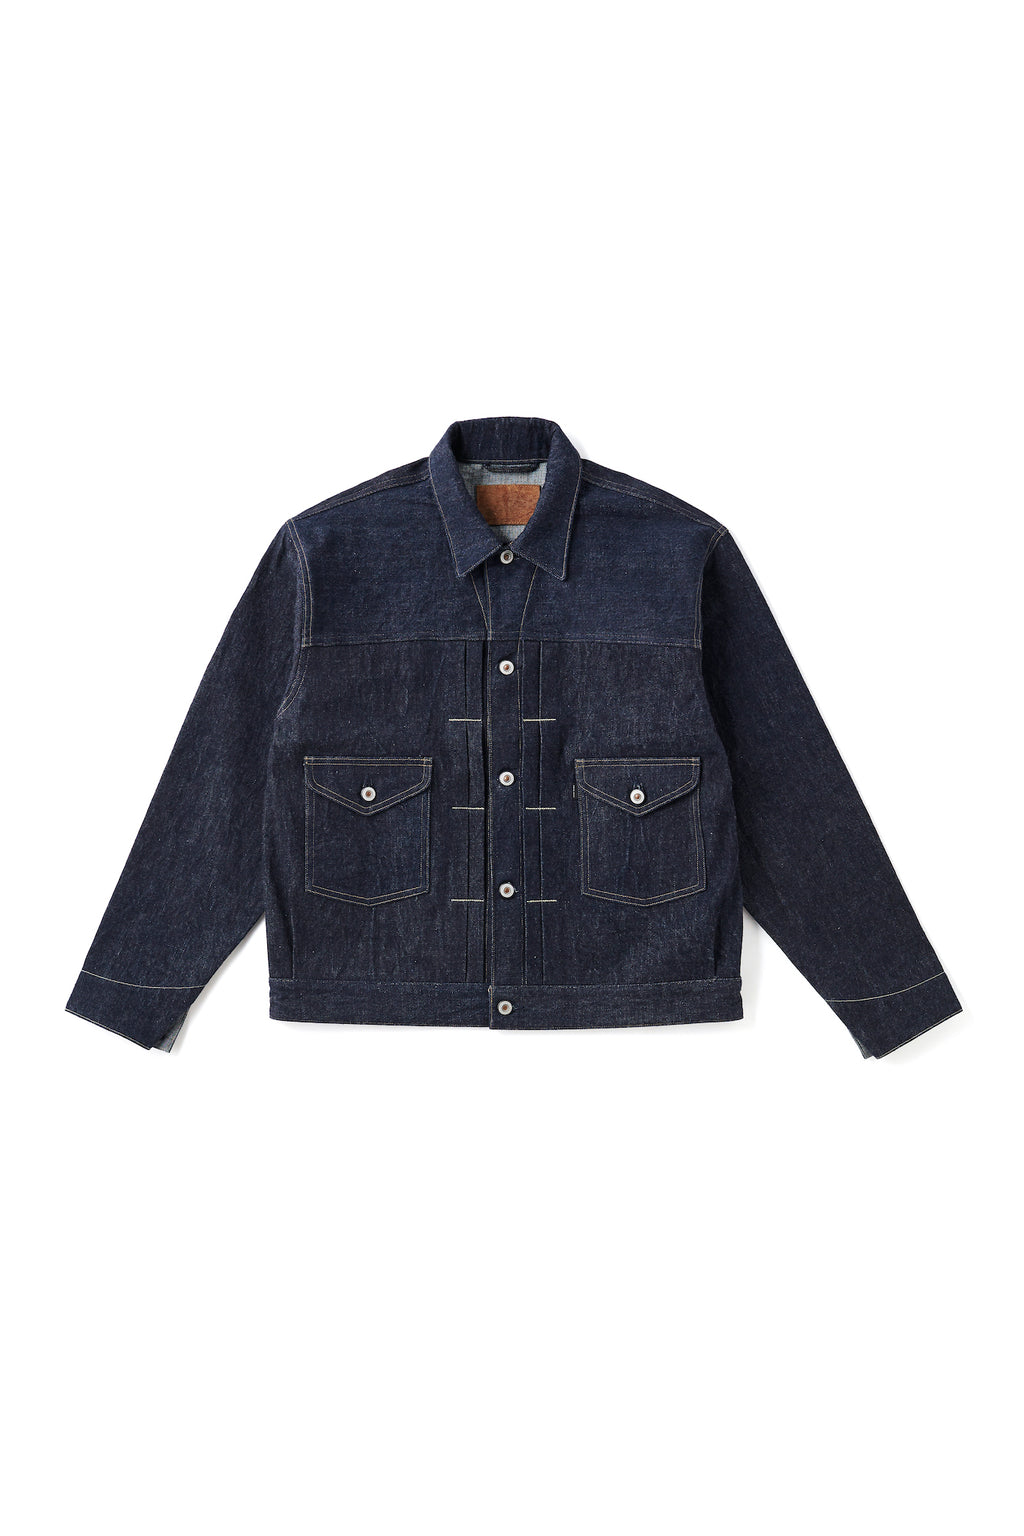 OPEN COLLAR RANCH JACKET - 201OJ-JK03